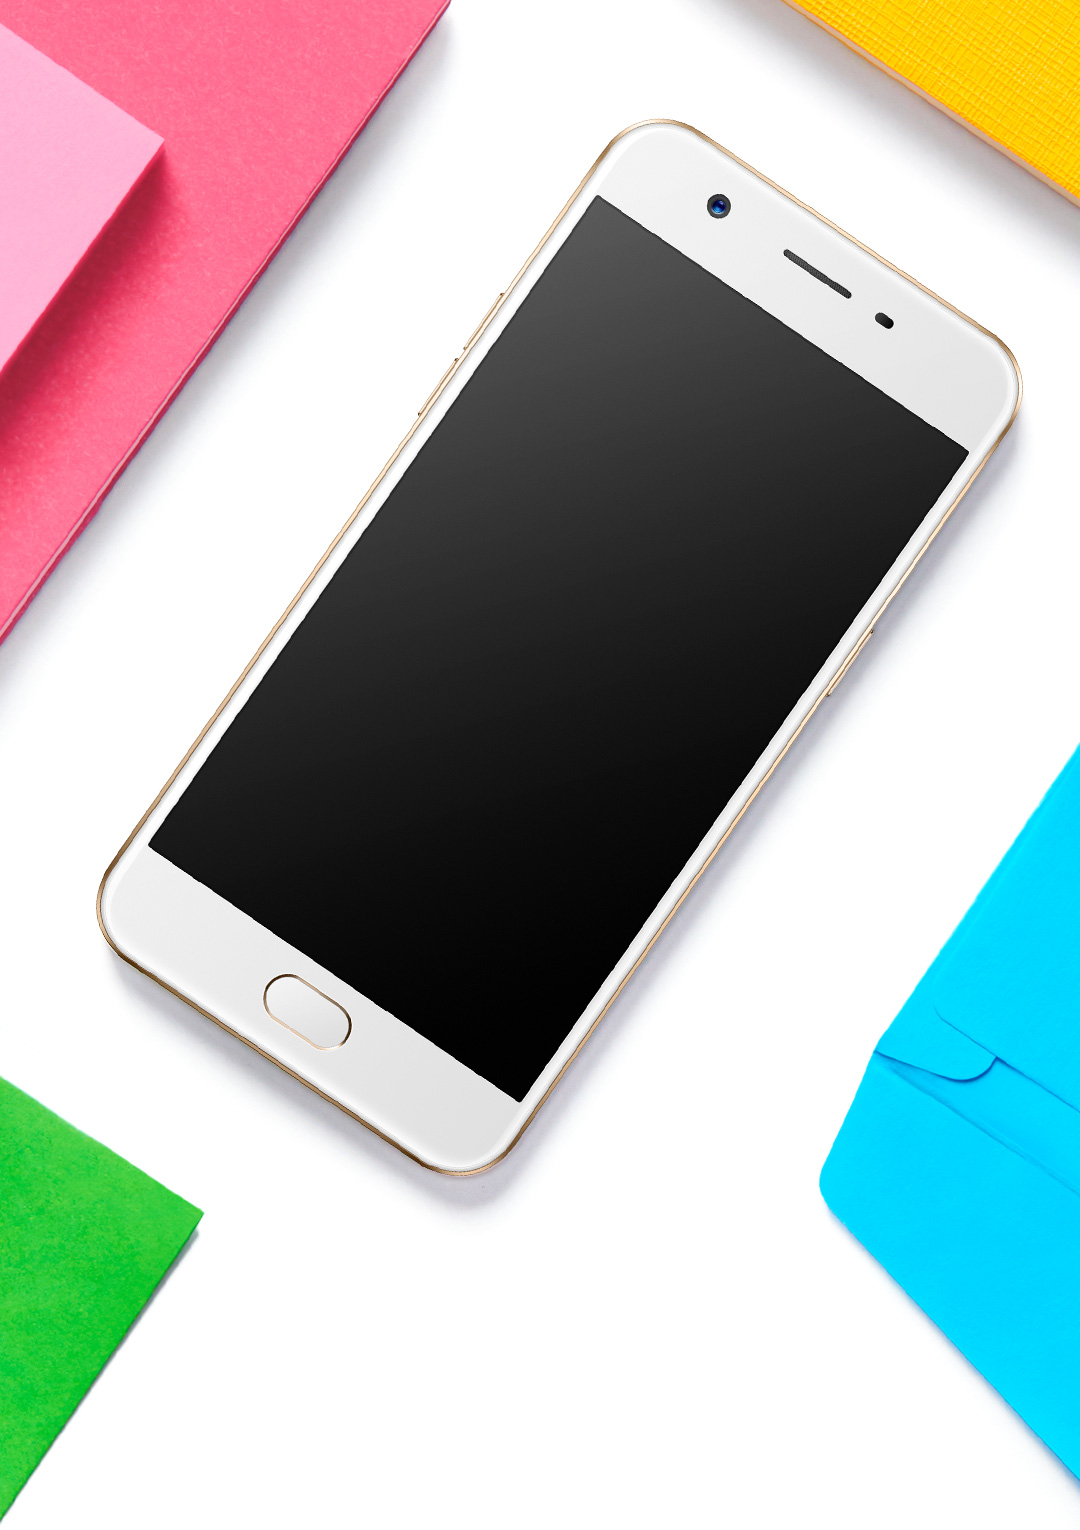 A57 - OPPO India